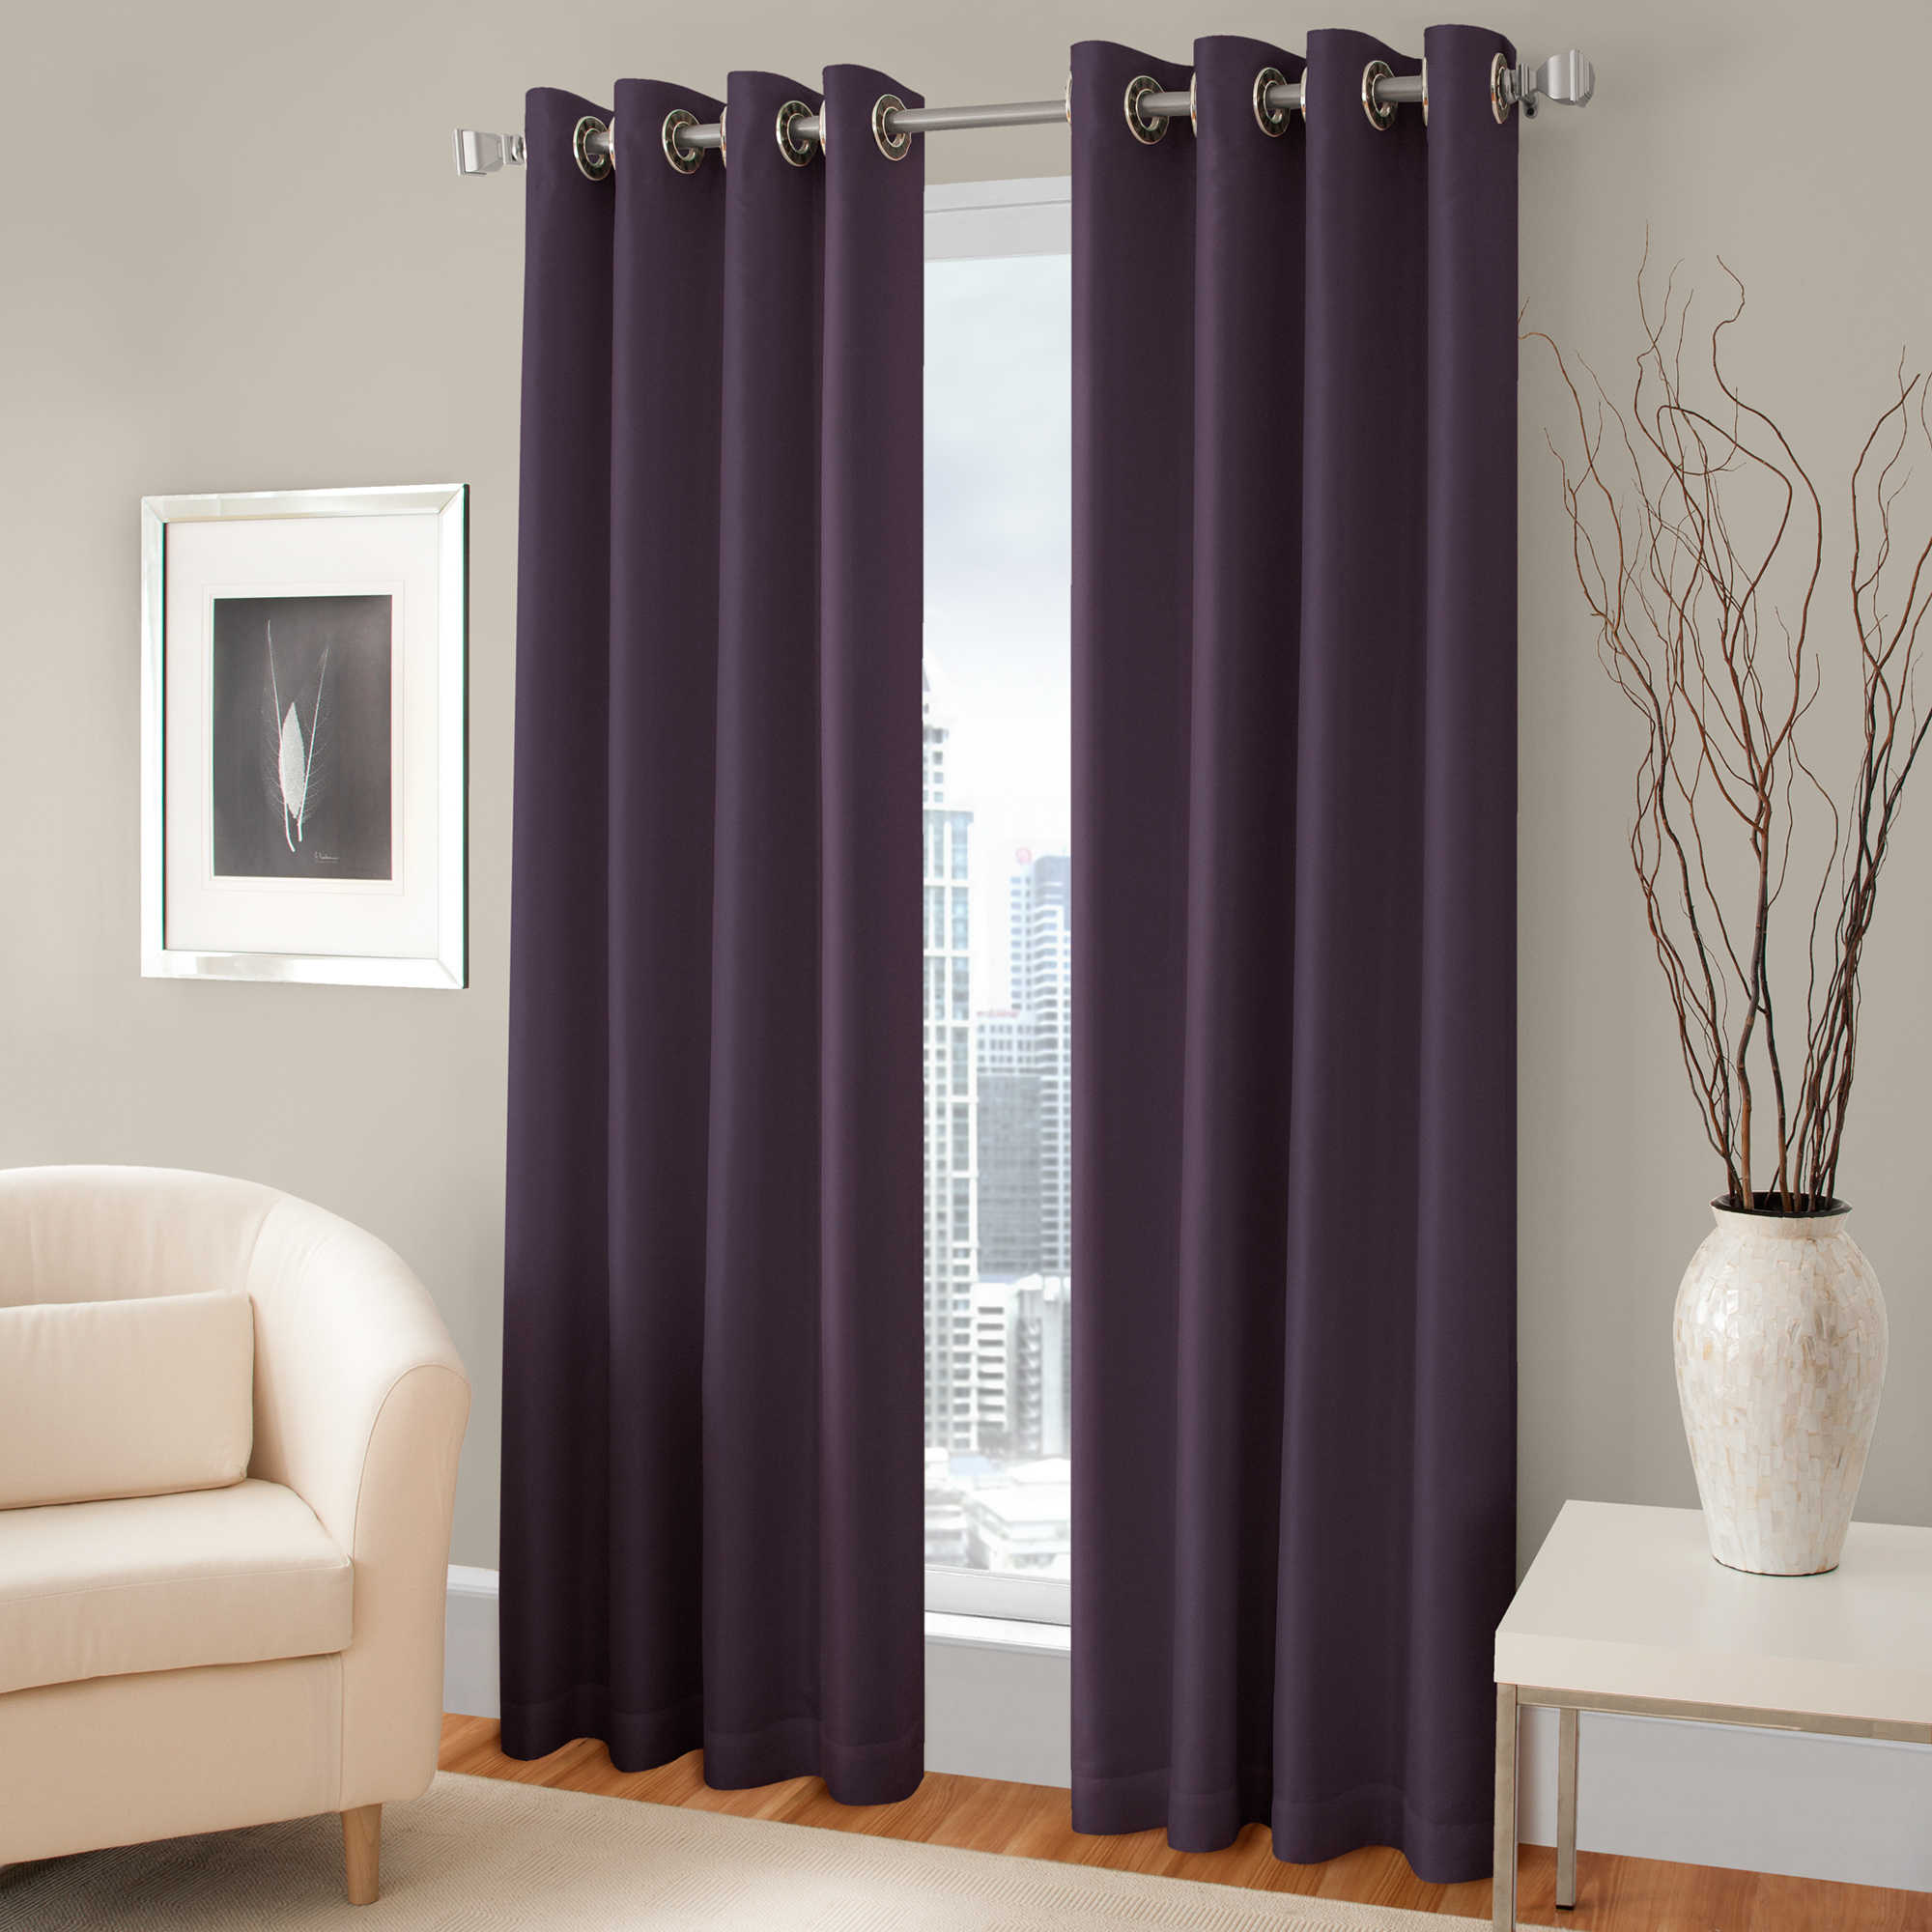 living home elrene navara reviews treatments for wayfair pdx grommet panel blackout ikat room fashions curtain max window single thermal